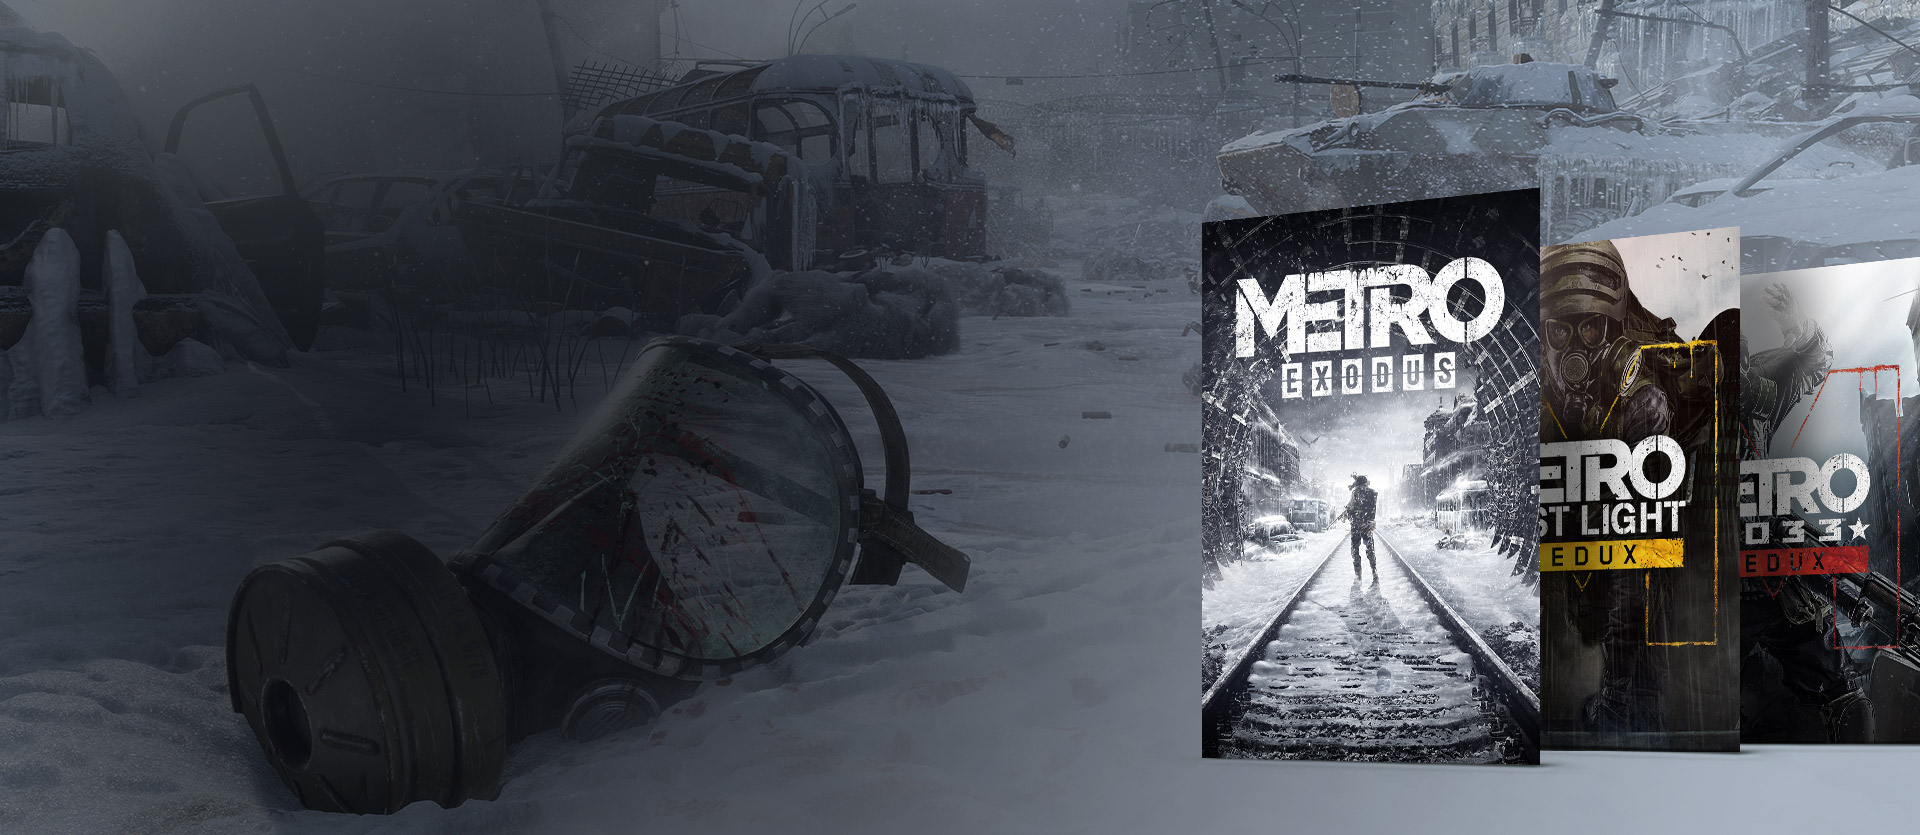 Metro Exodus, Metro 2033 Redux and Metro: Last Light Redux boxes in front of a snowy decimated town with a broken gas mask.